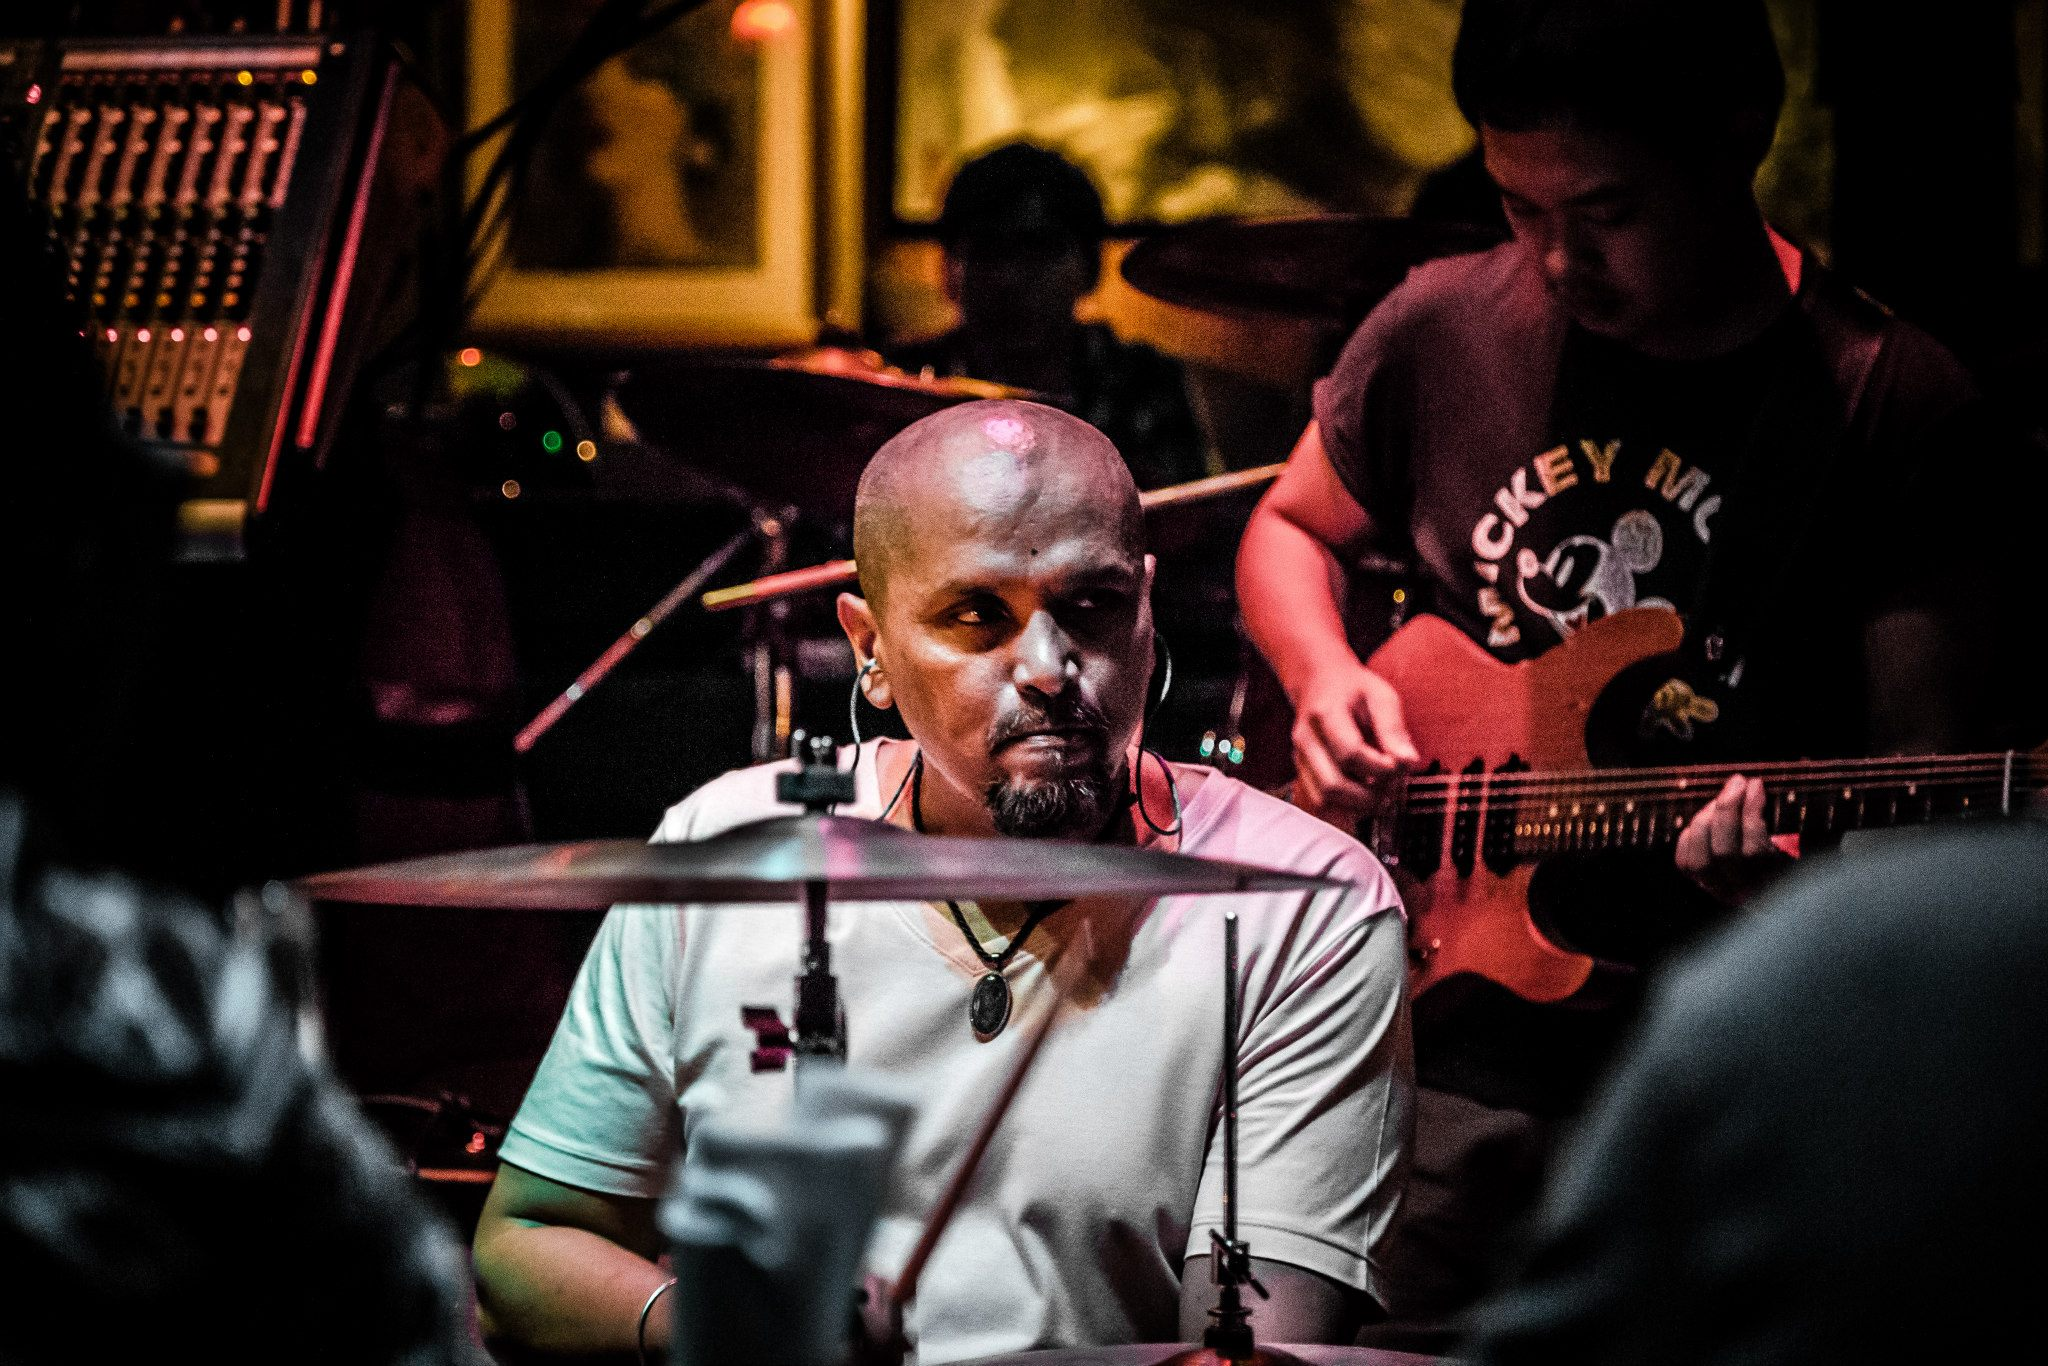 Bangkok: 10 Best Live Music Bars